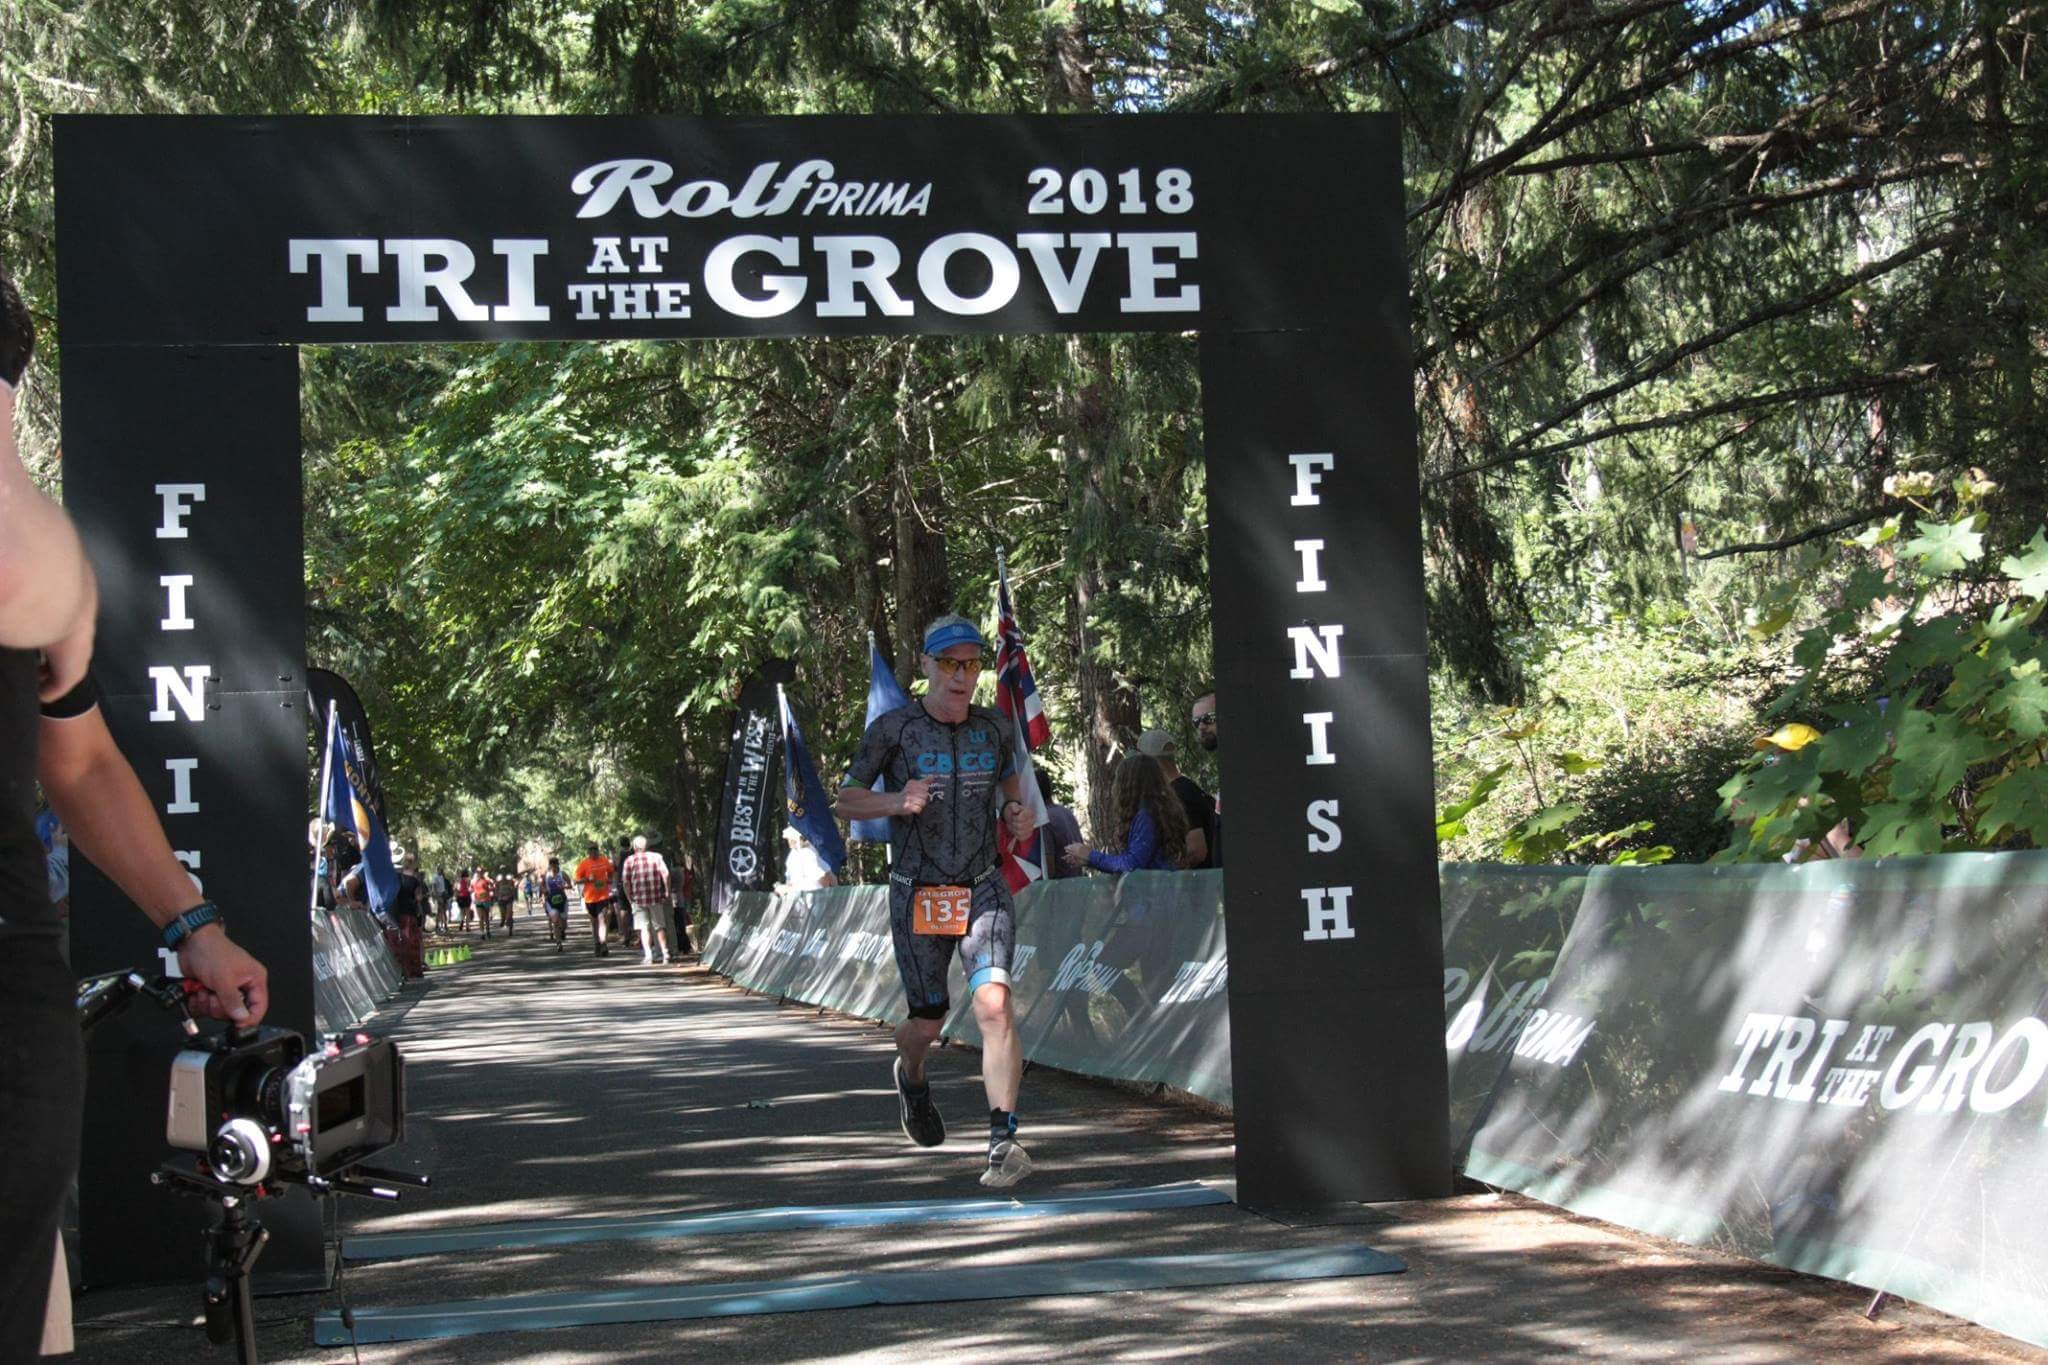 CBCG Athlete Don Geddes on his way to winning his age group at the 2018 Rolf Prima Tri at the Grove